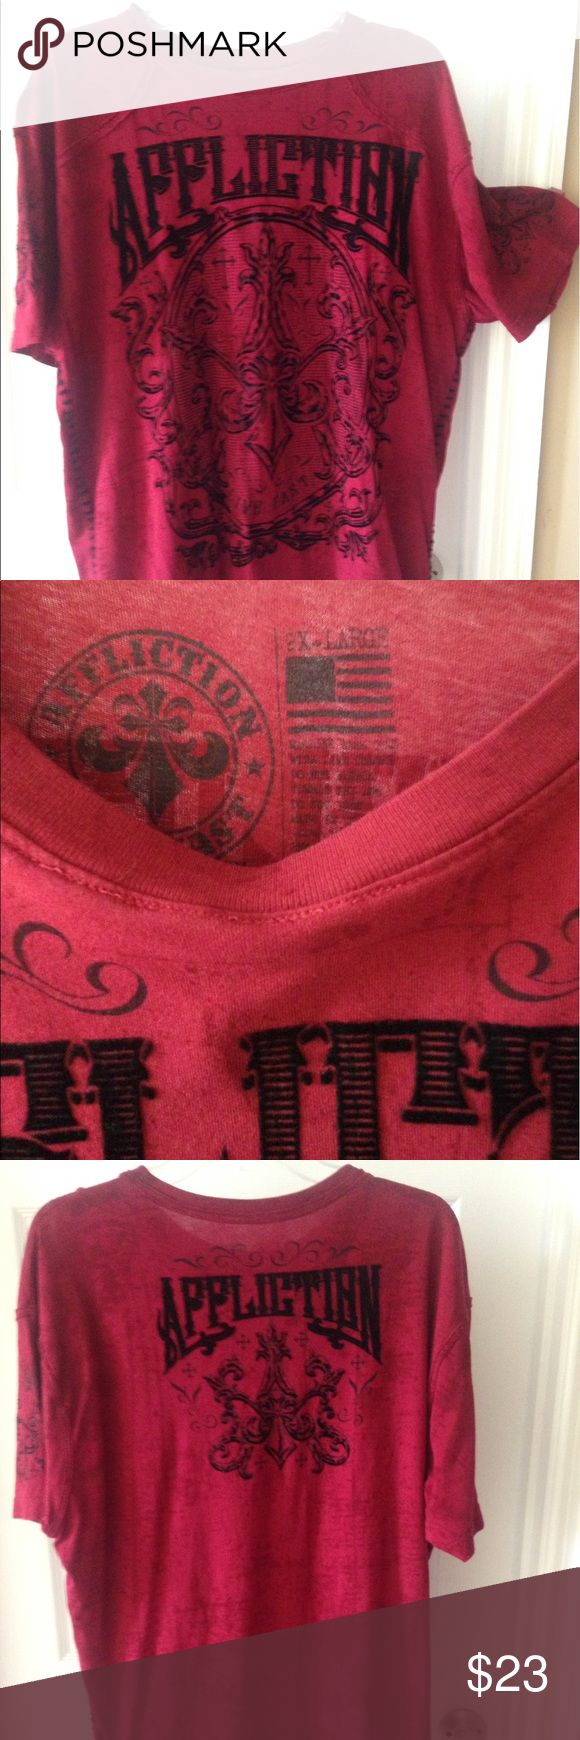 Affliction Men's T-shirt XXL Maroon red w black graphic- majority in velvet material. Yarn-like stitching starting under armpits to bottom as shown. Great condition. Affliction Shirts Tees - Short Sleeve